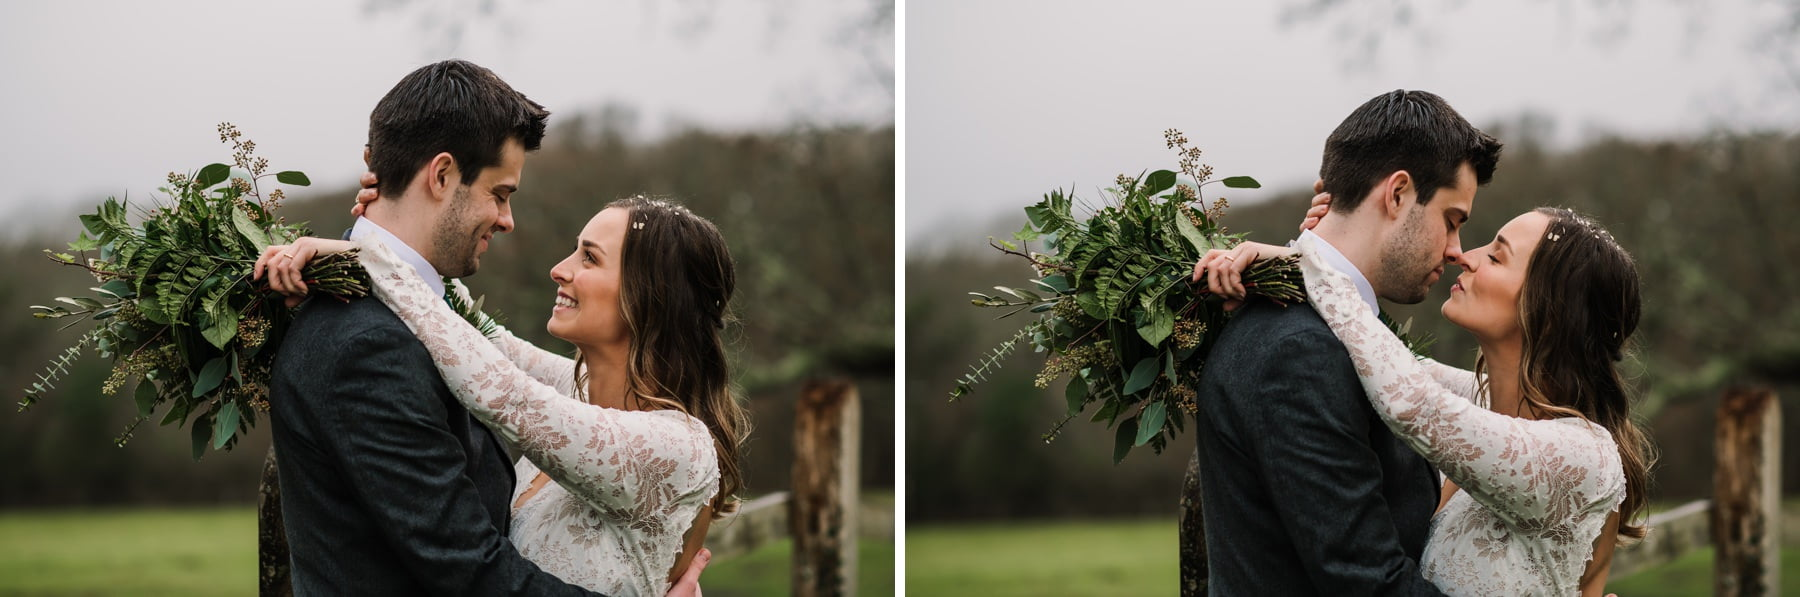 2020 Micro Wedding in New Forest